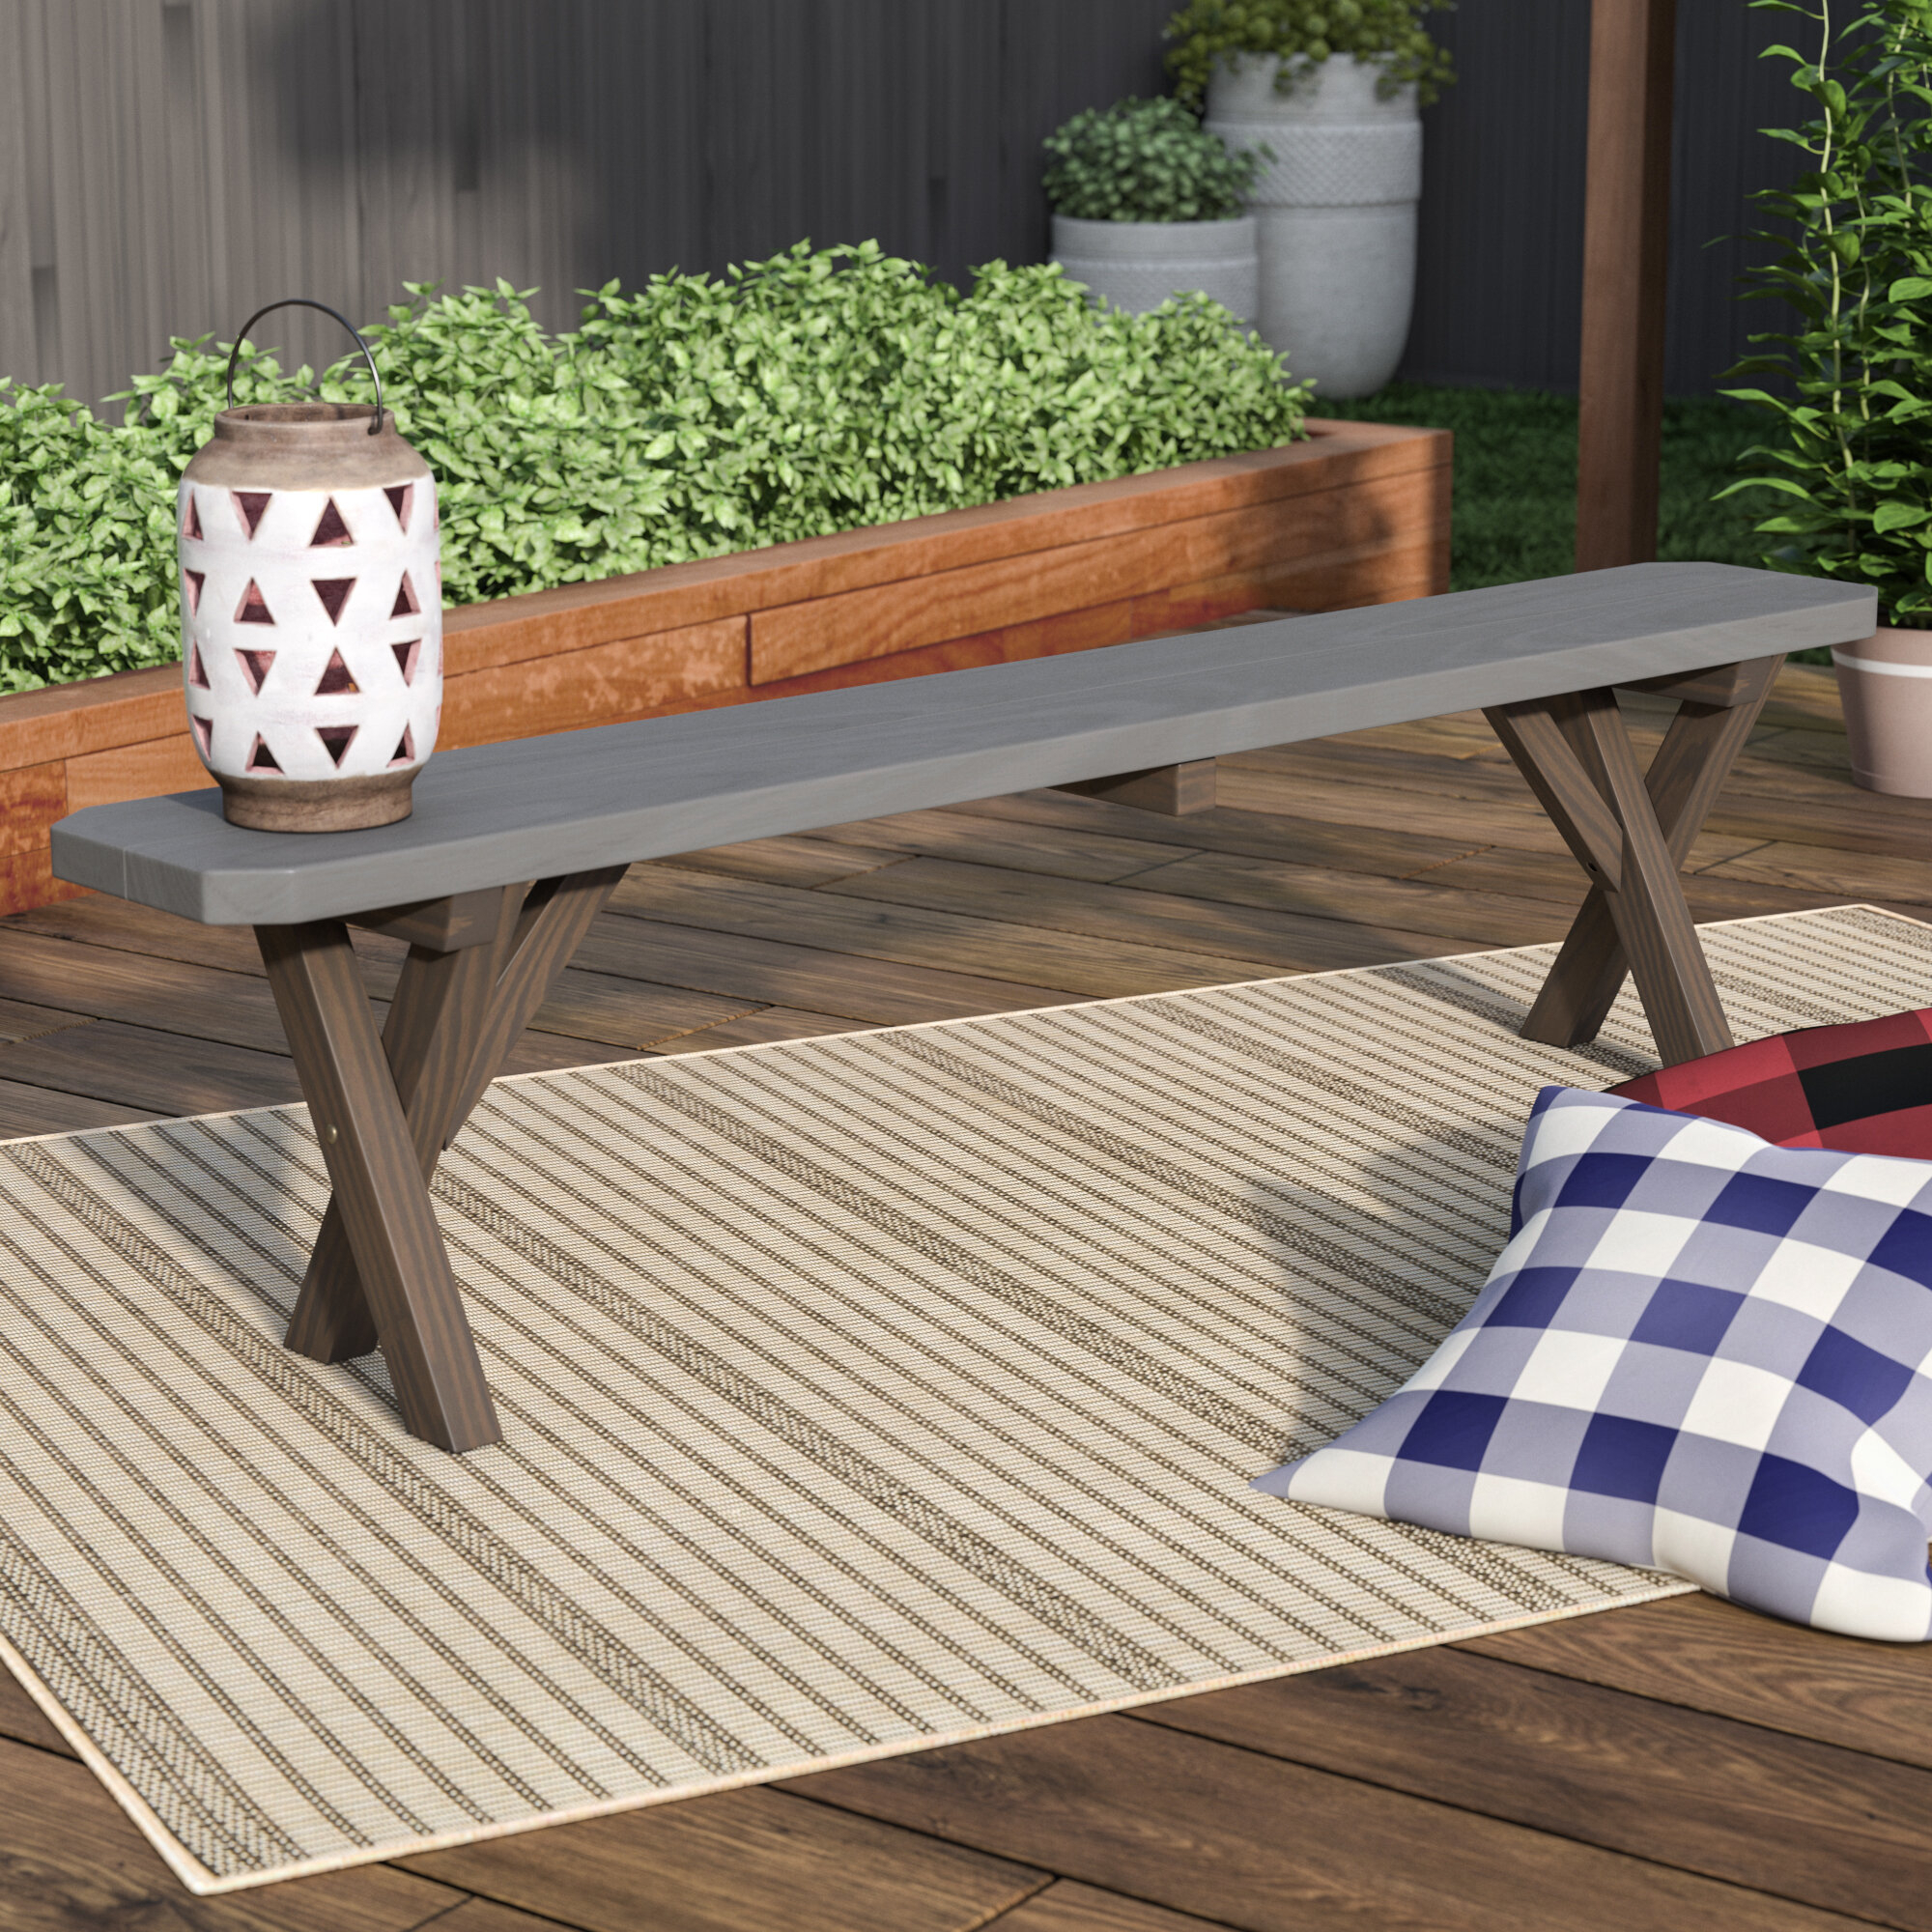 Rutherford Wooden Arbour Bench Regarding Lucille Timberland Wooden Garden Benches (View 10 of 25)